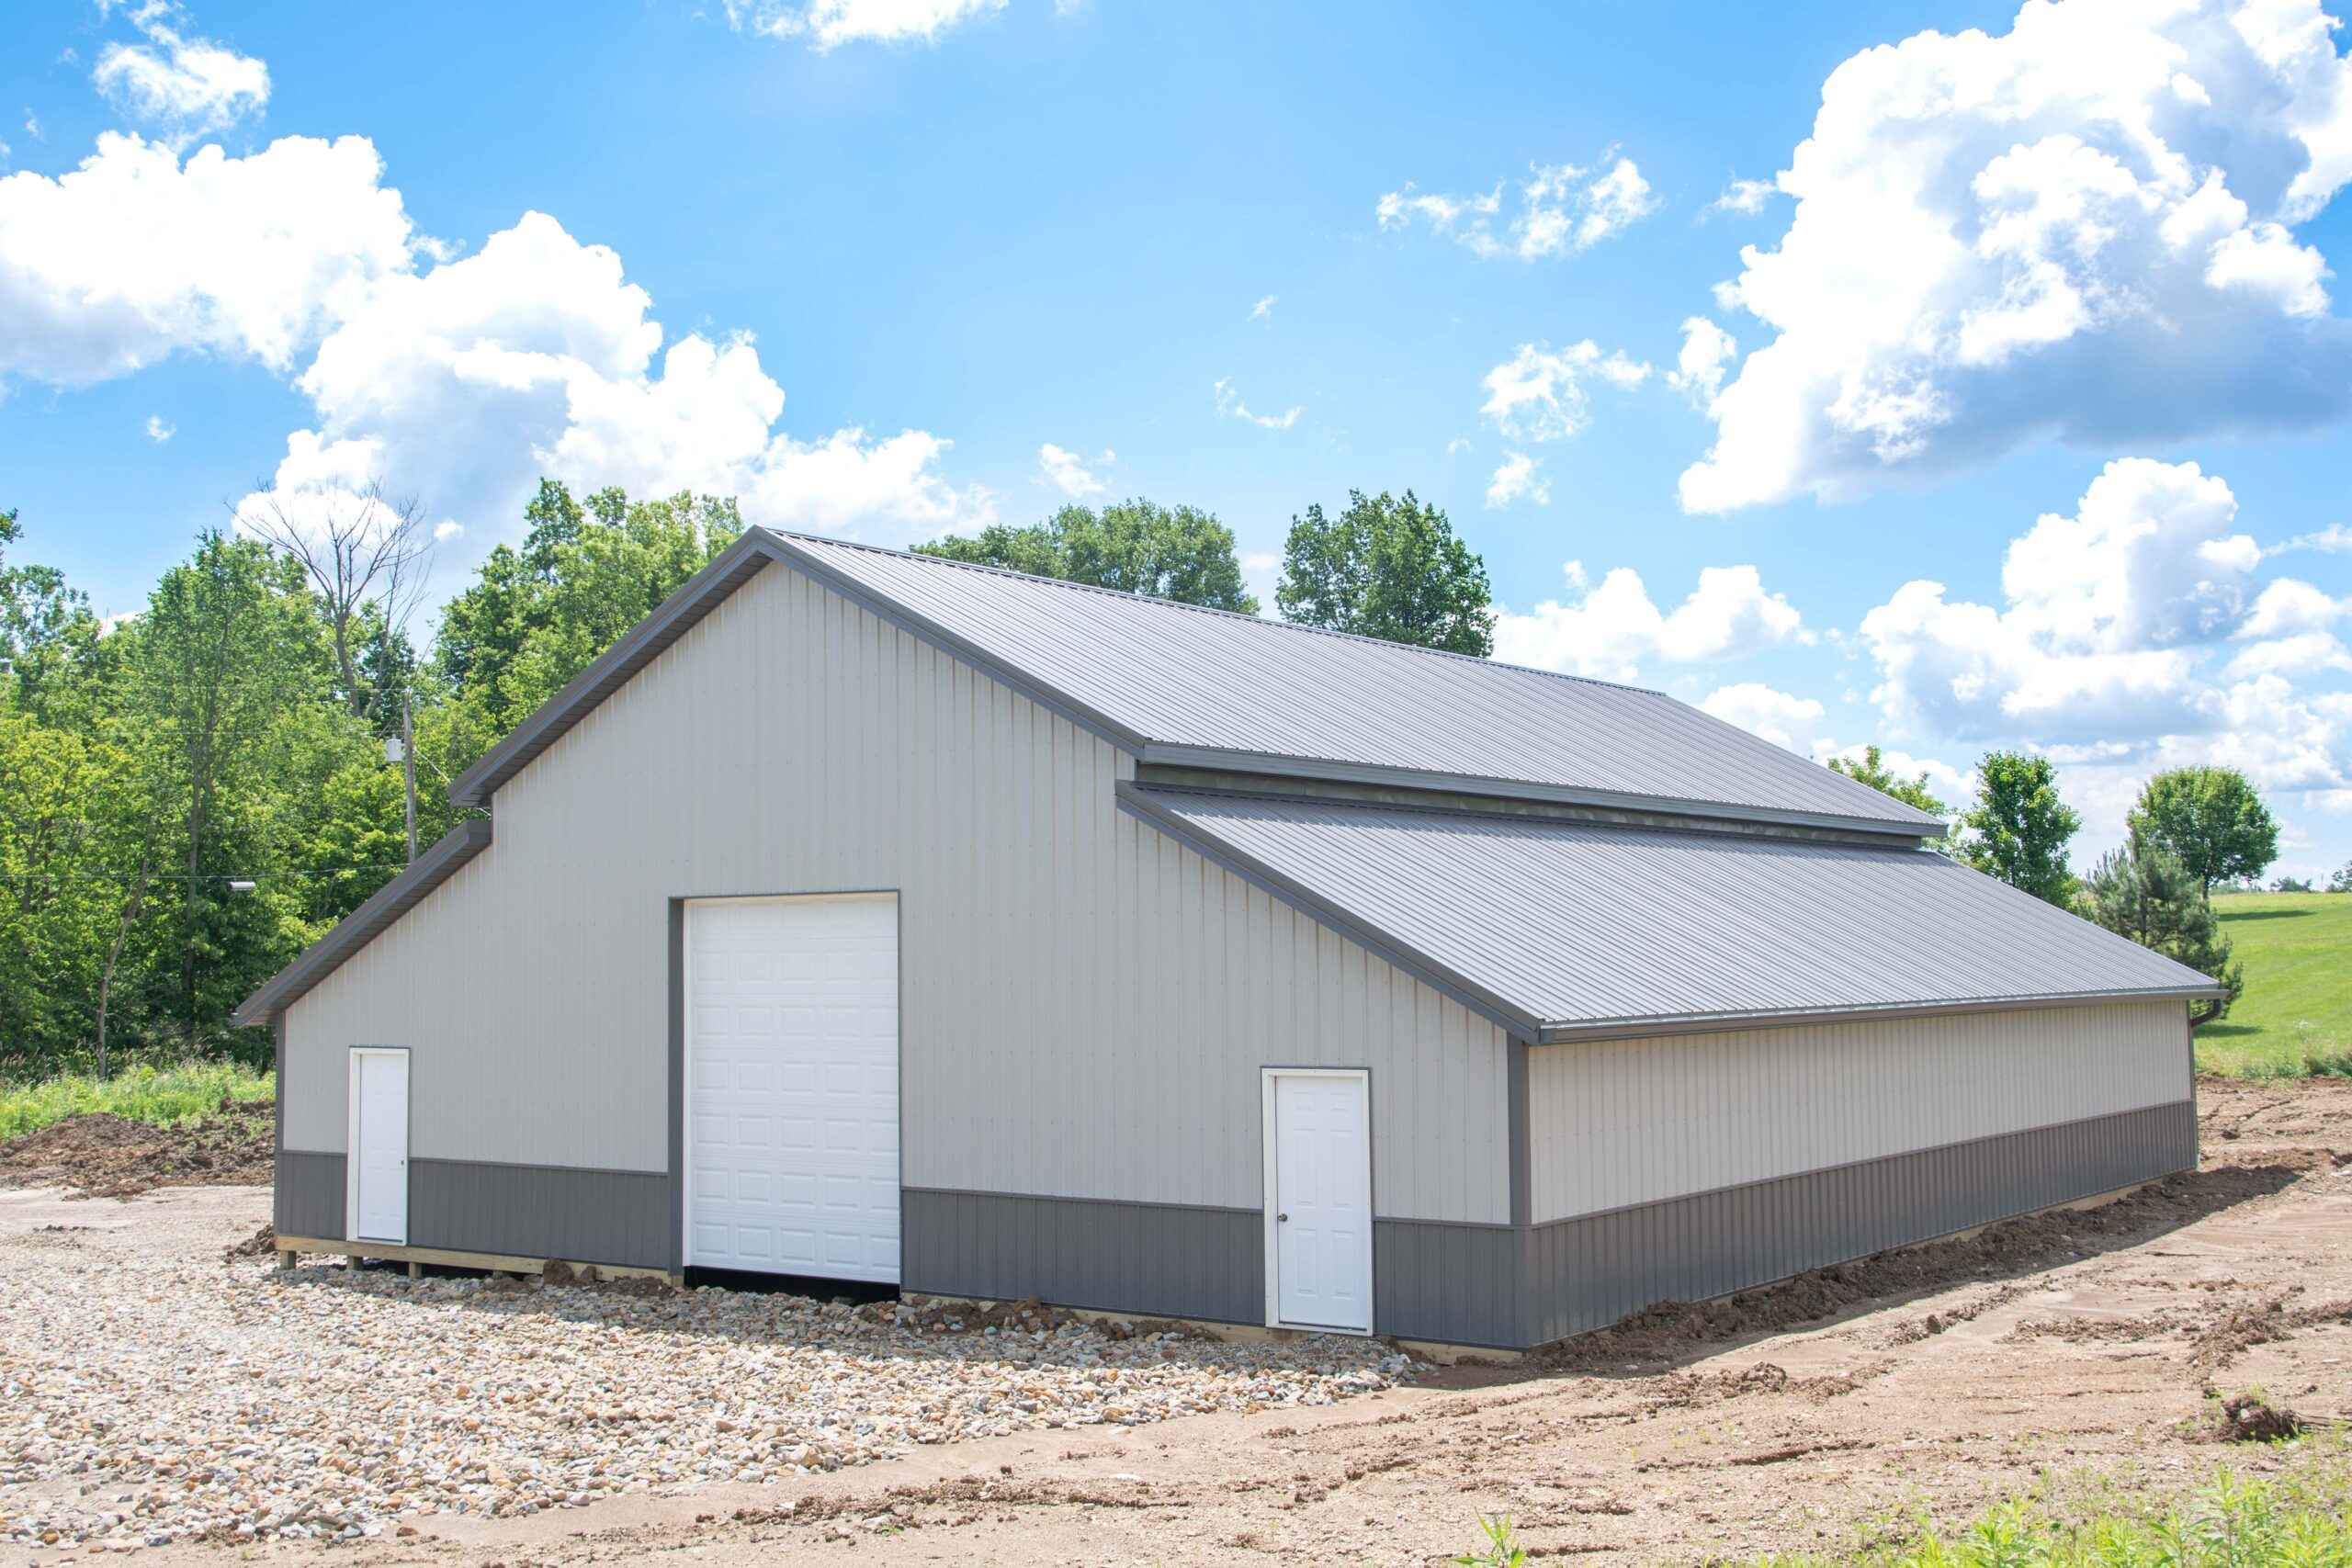 Gray and Charcoal Pole Barn for Livestock and Storage